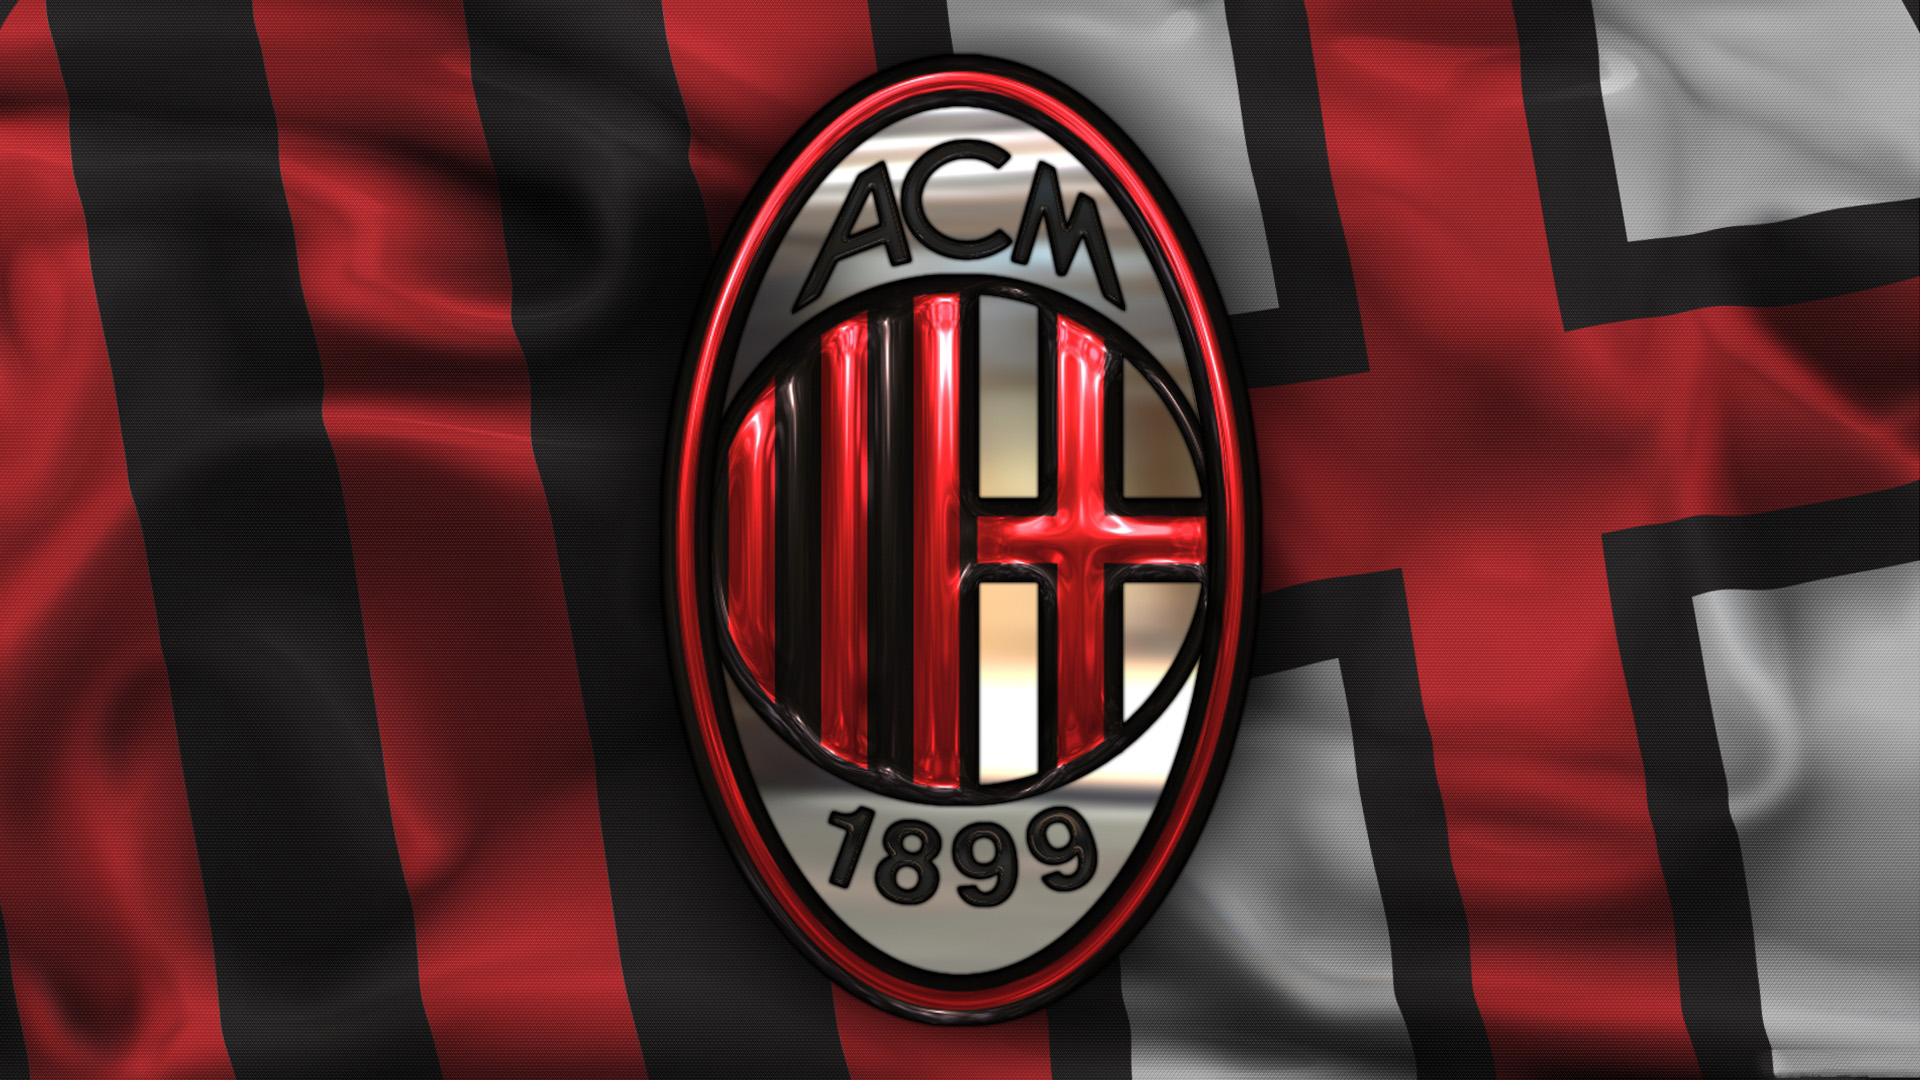 AC Milan flag wallpaper